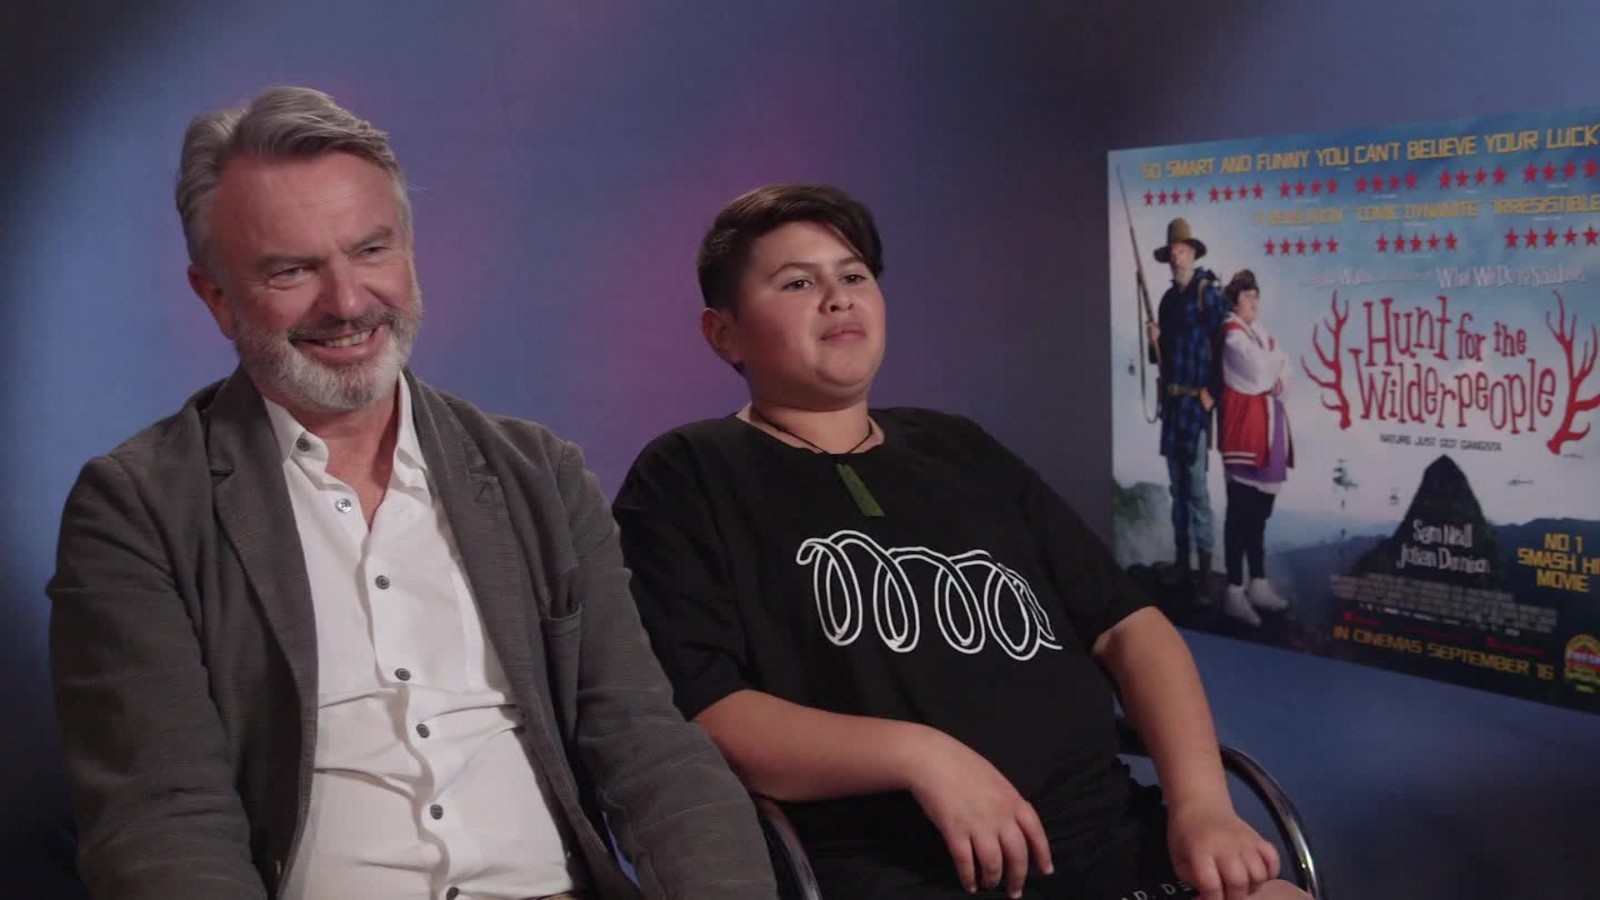 hunt for the wilderpeople mp4